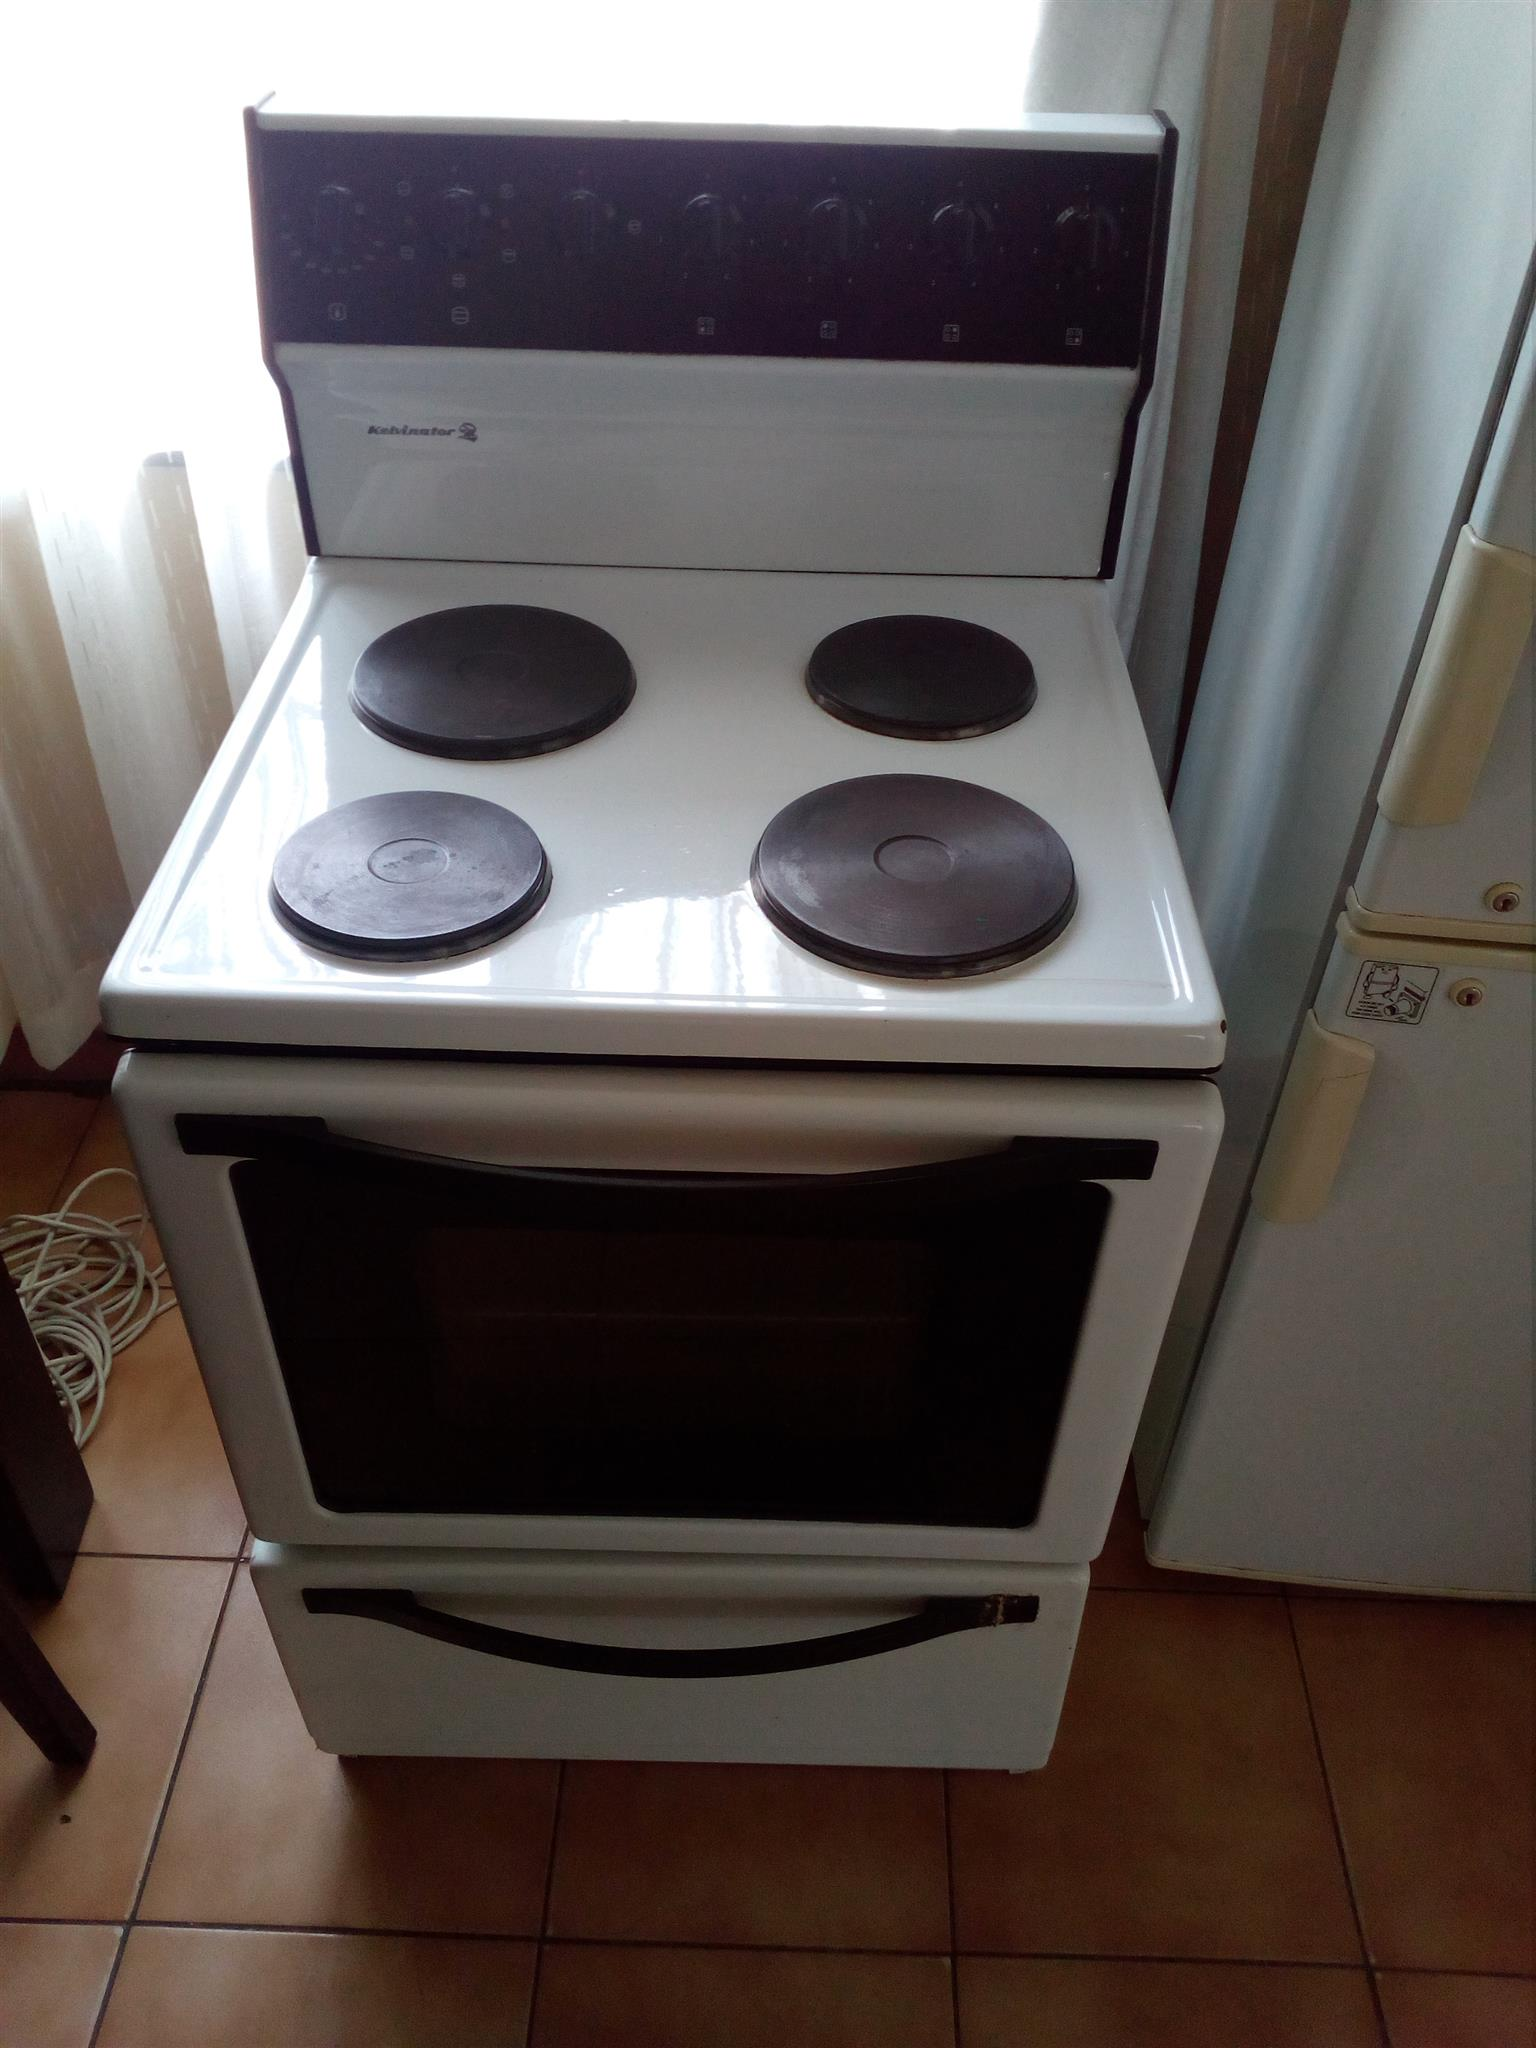 stove  (used) for sale